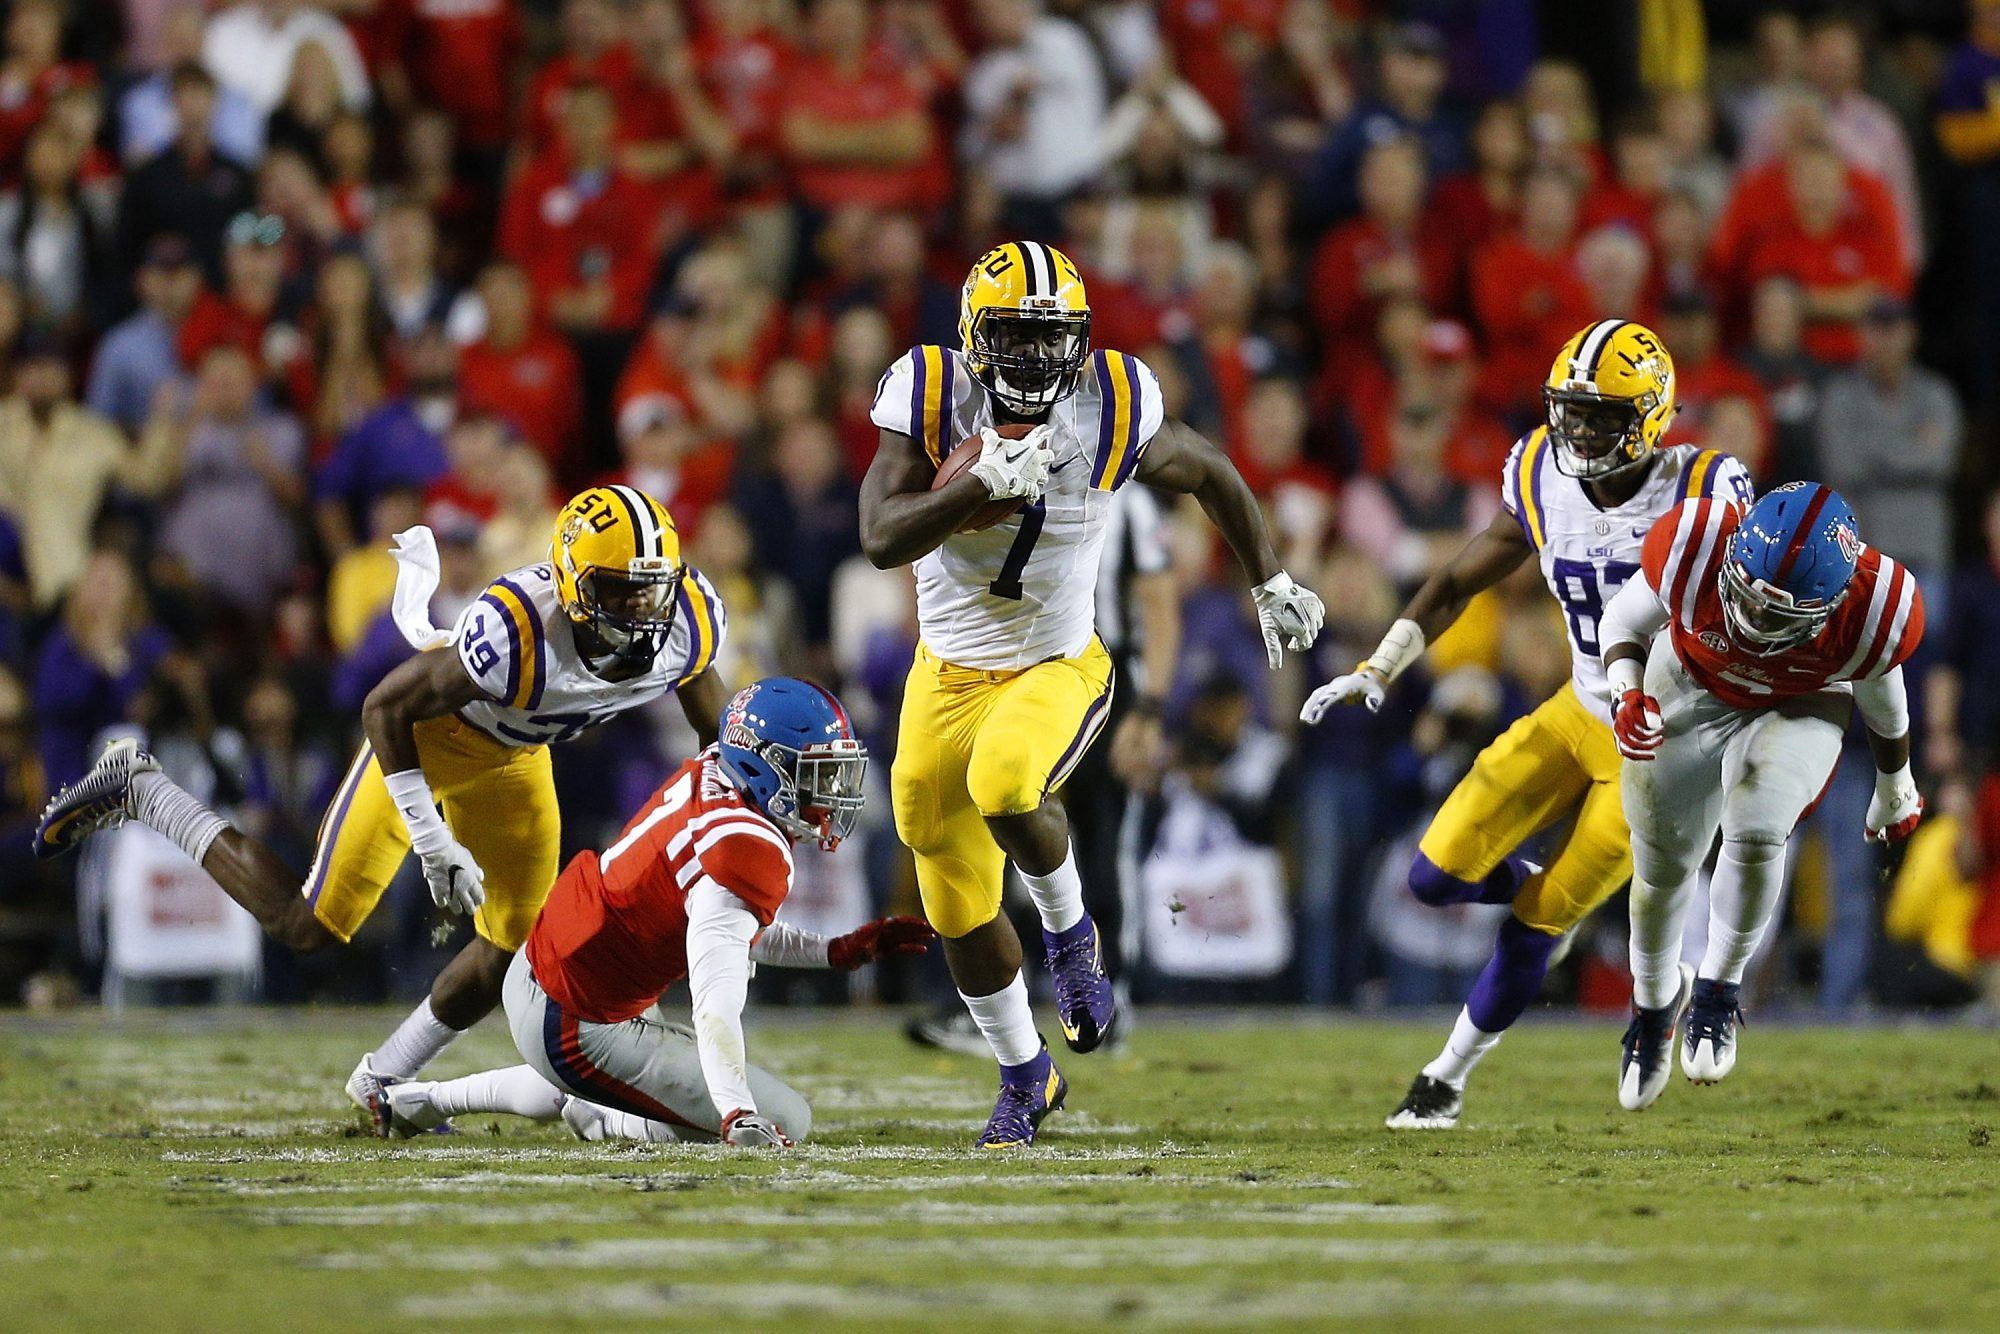 LSU vs. Ole Miss